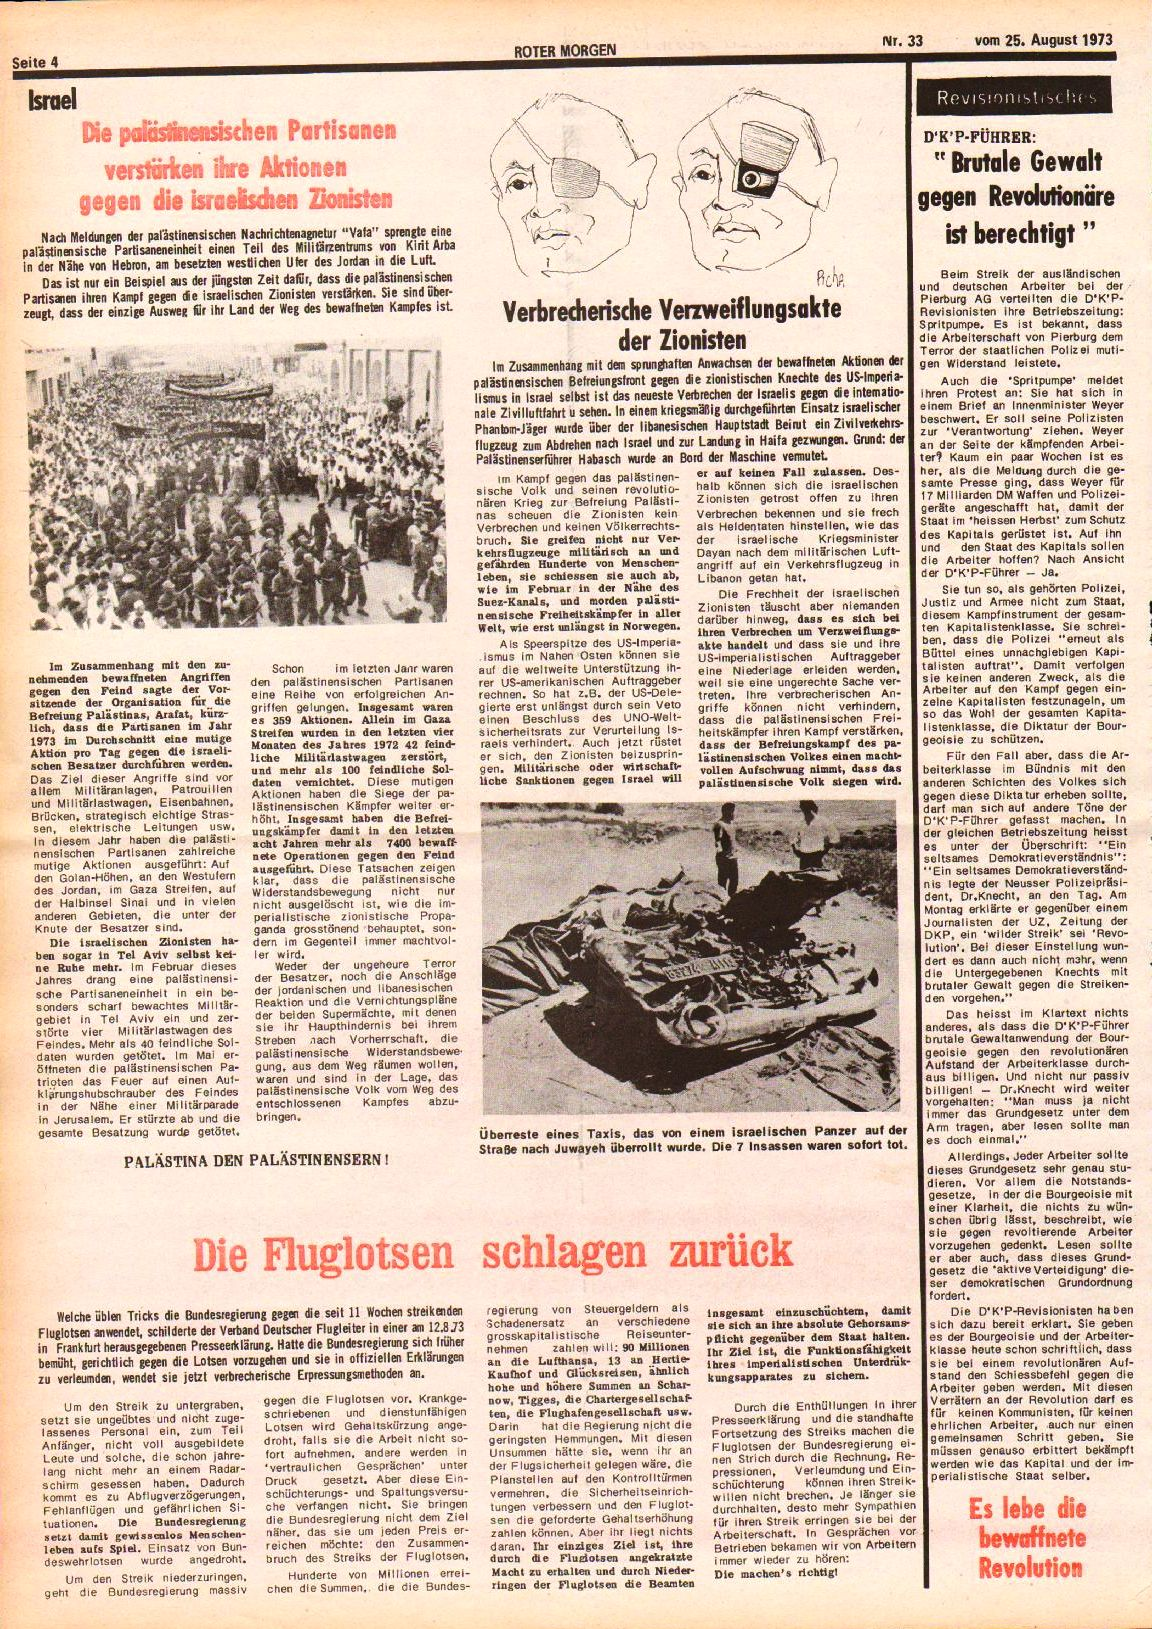 Roter Morgen, 7. Jg., 25. August 1973, Nr. 33, Seite 4